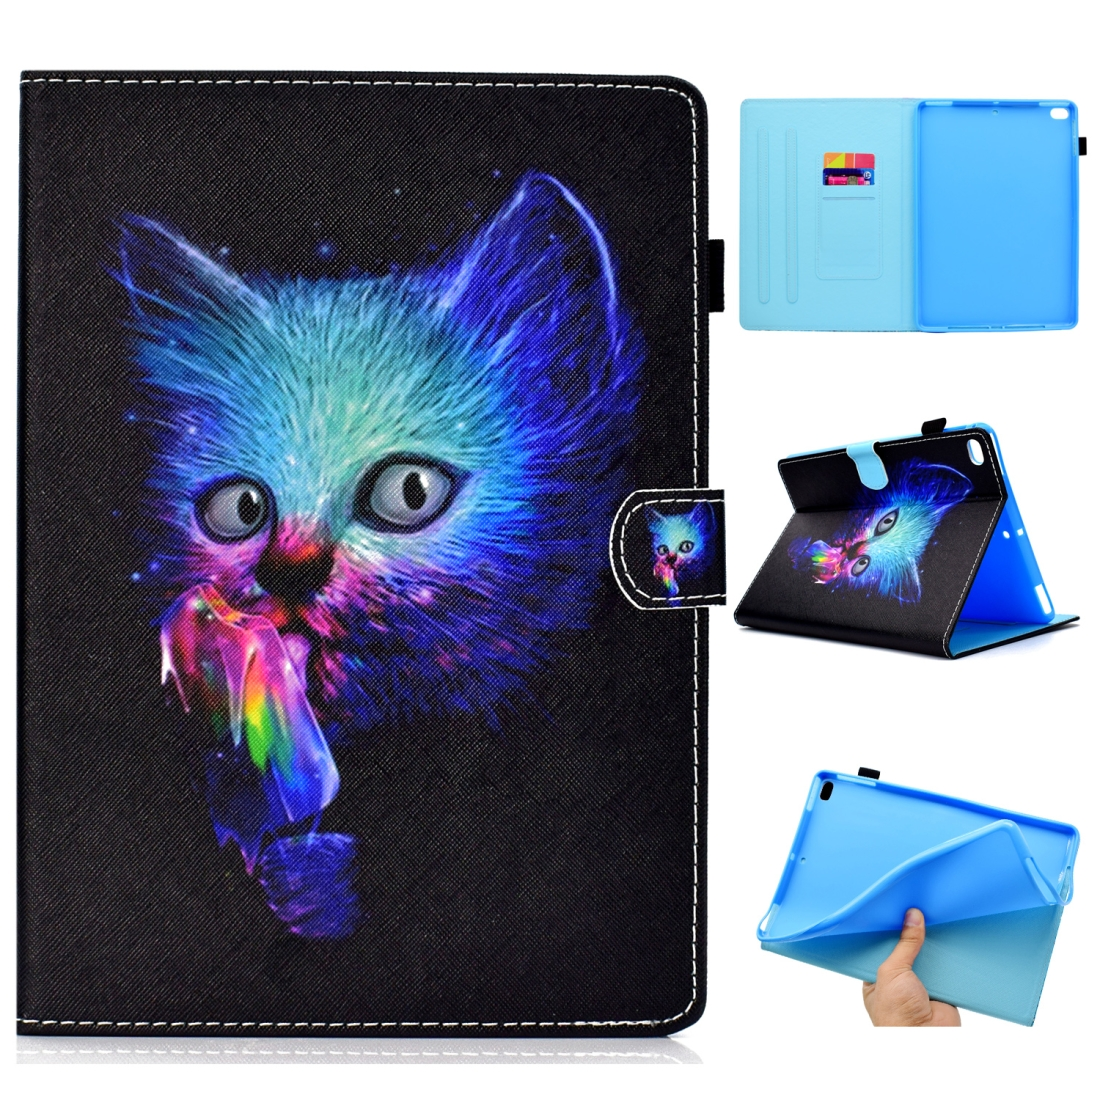 Case For iPad 5/ 6 Artistic Stitching Leather Case, with Sleeves & Auto Sleep function (Super Cat)